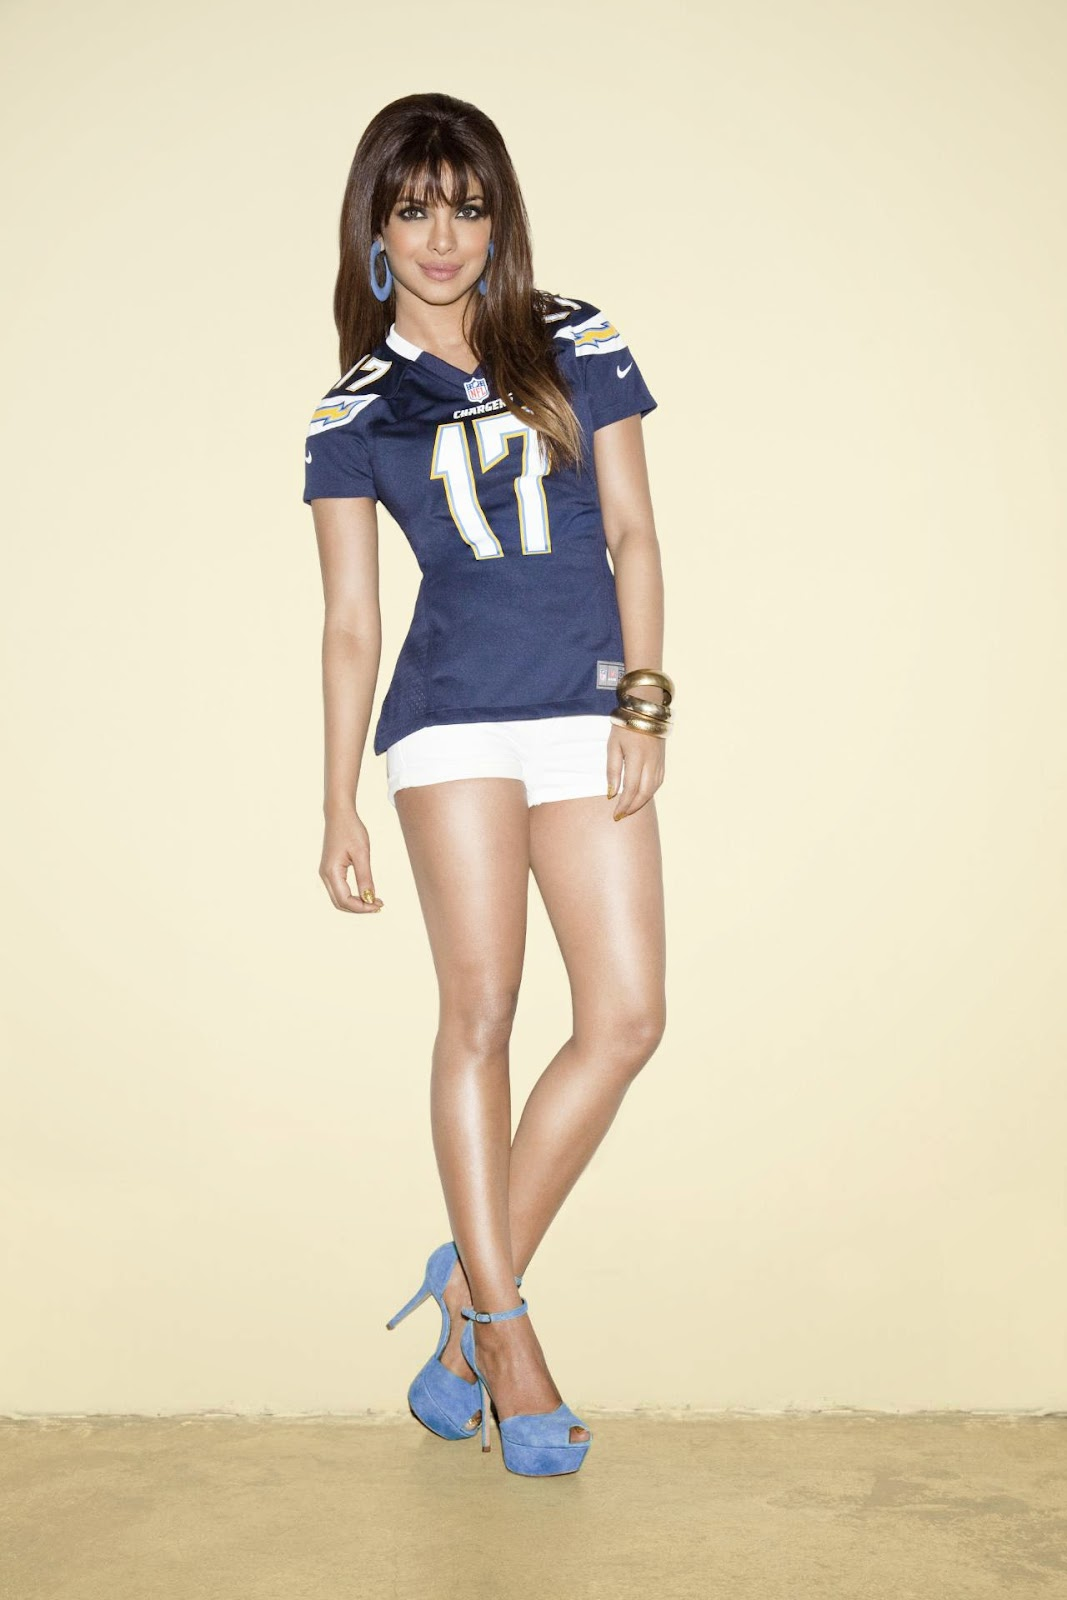 Priyanka Chopra in Flaunting Sexy Legs in NFL Jersey & Hot-pants